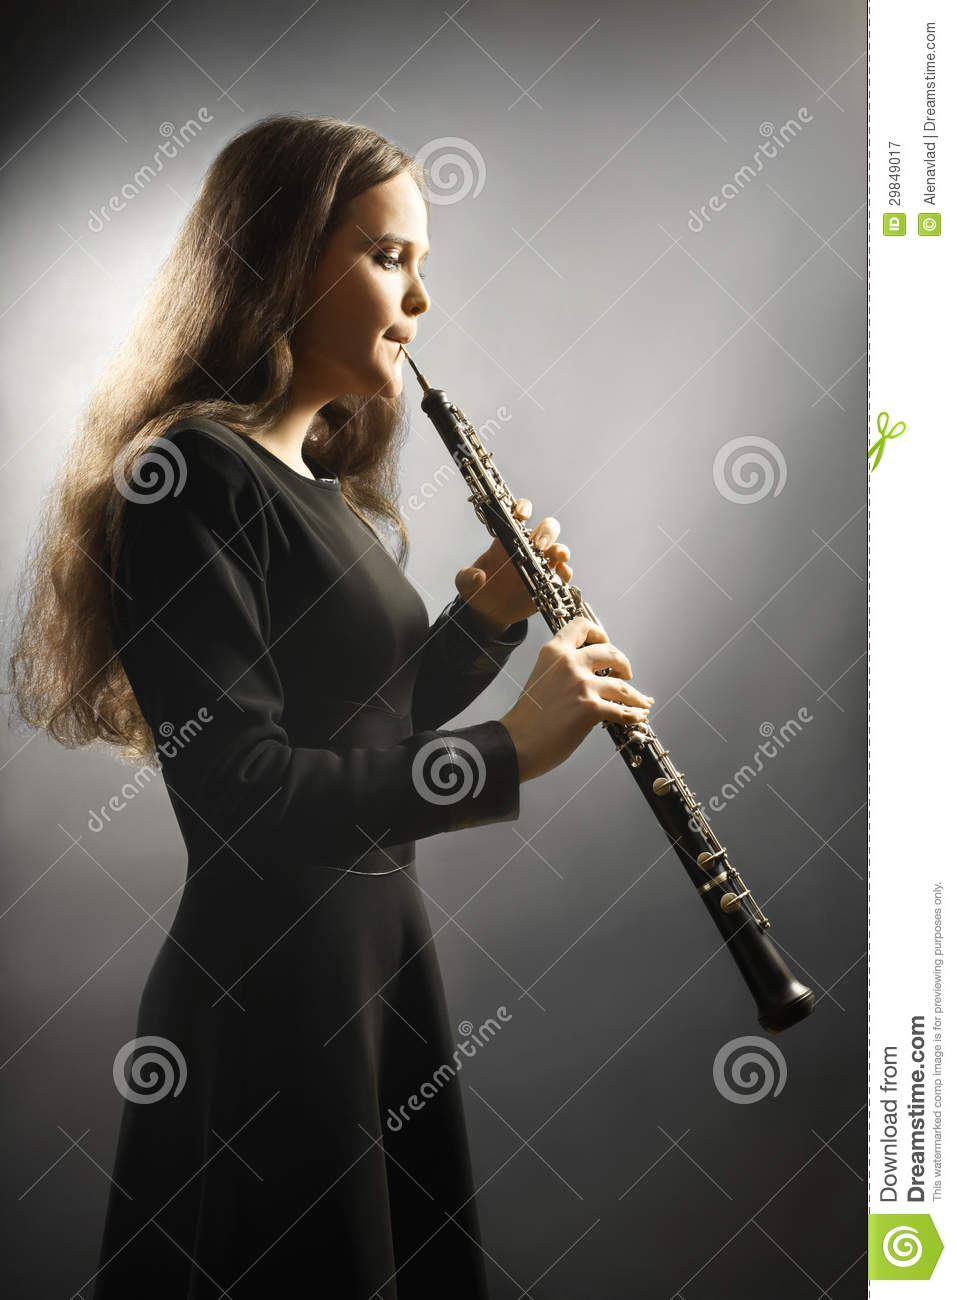 Classical Musician Oboe Musical Instrument Playing. Royalty Free Stock ...